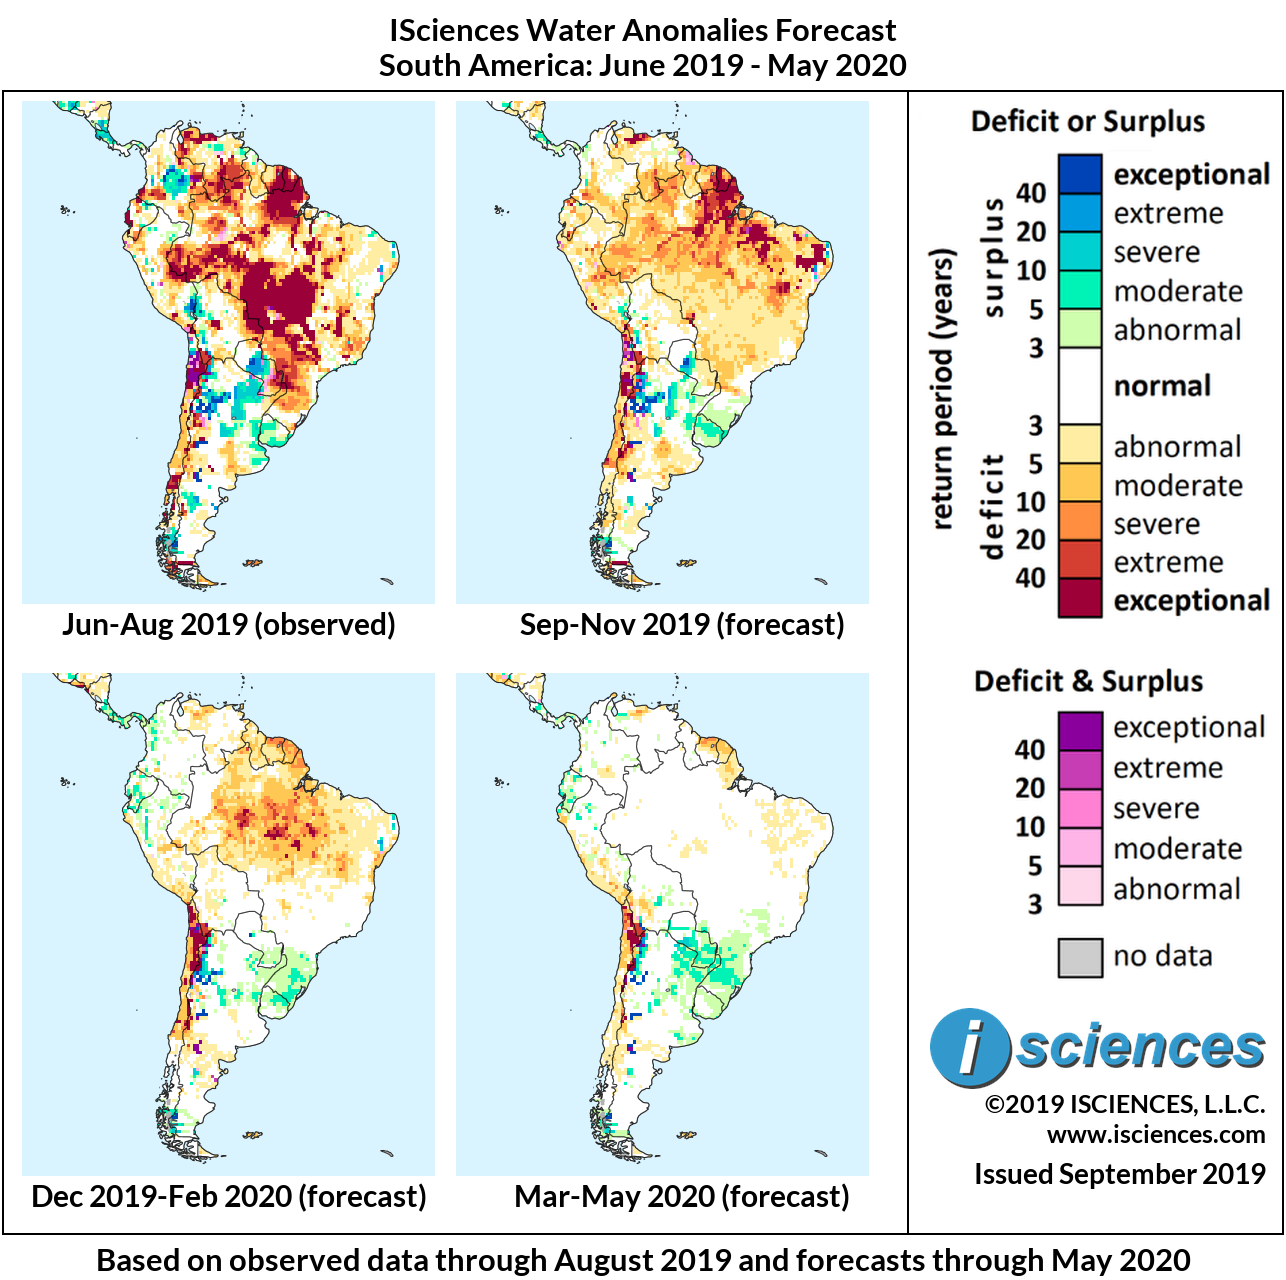 ISciences_South_America_Composite_Adjusted_201906-202005_3mo_panel.png